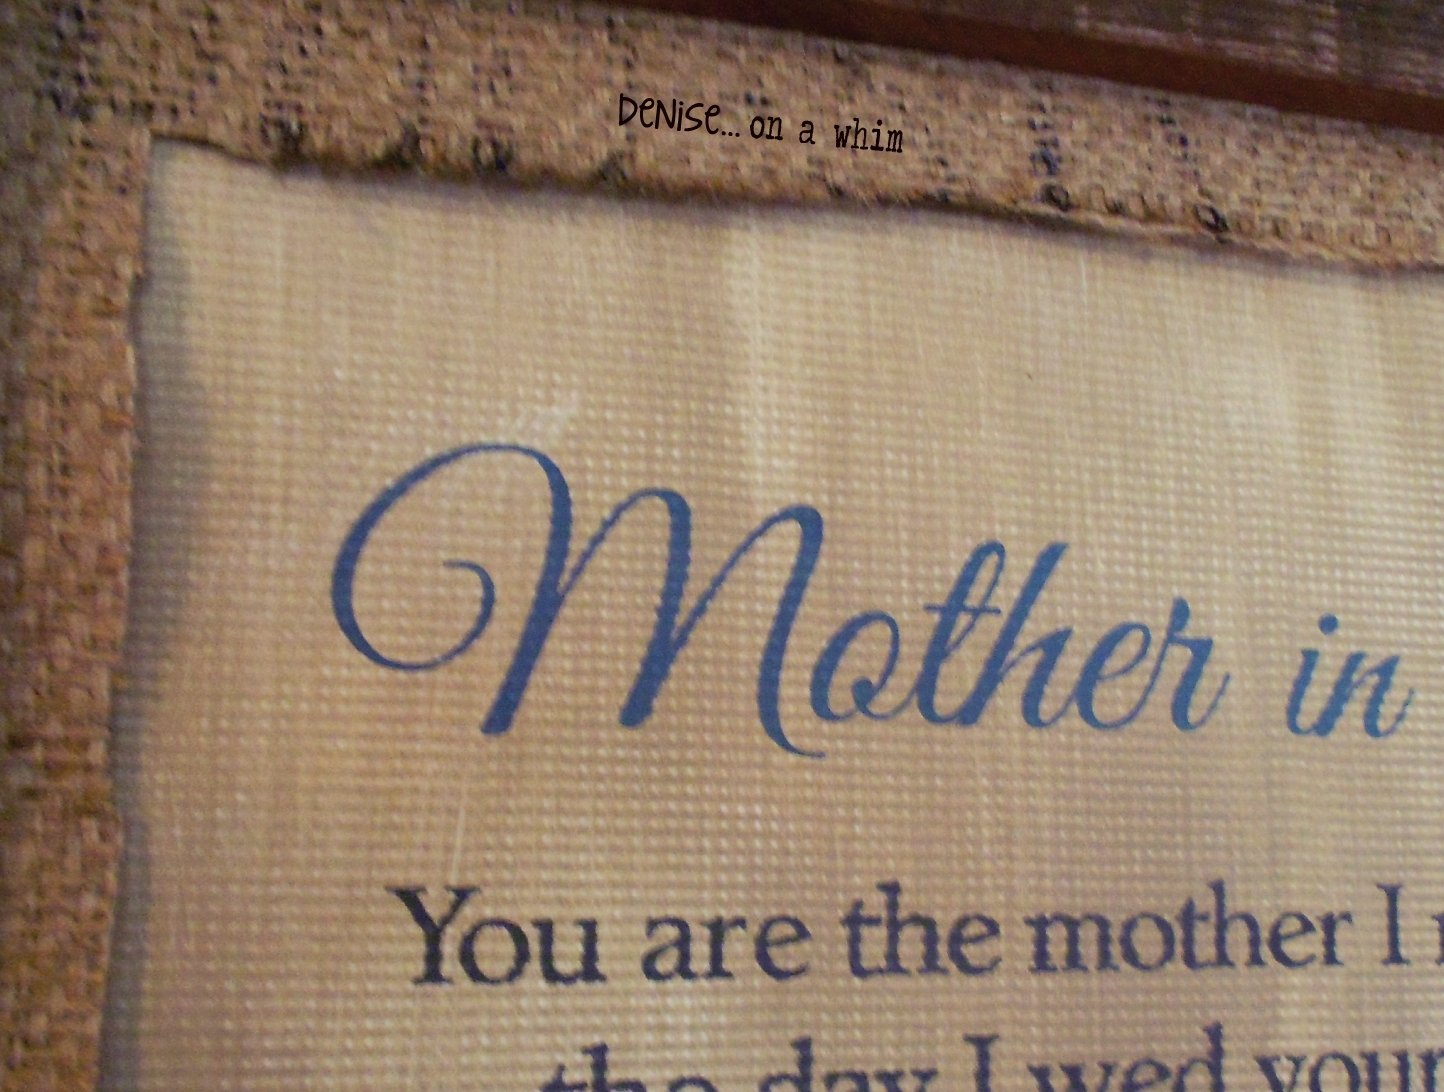 10 Attractive Mother In Law Mothers Day Gift Ideas deniseon a whim a custom mothers day gift